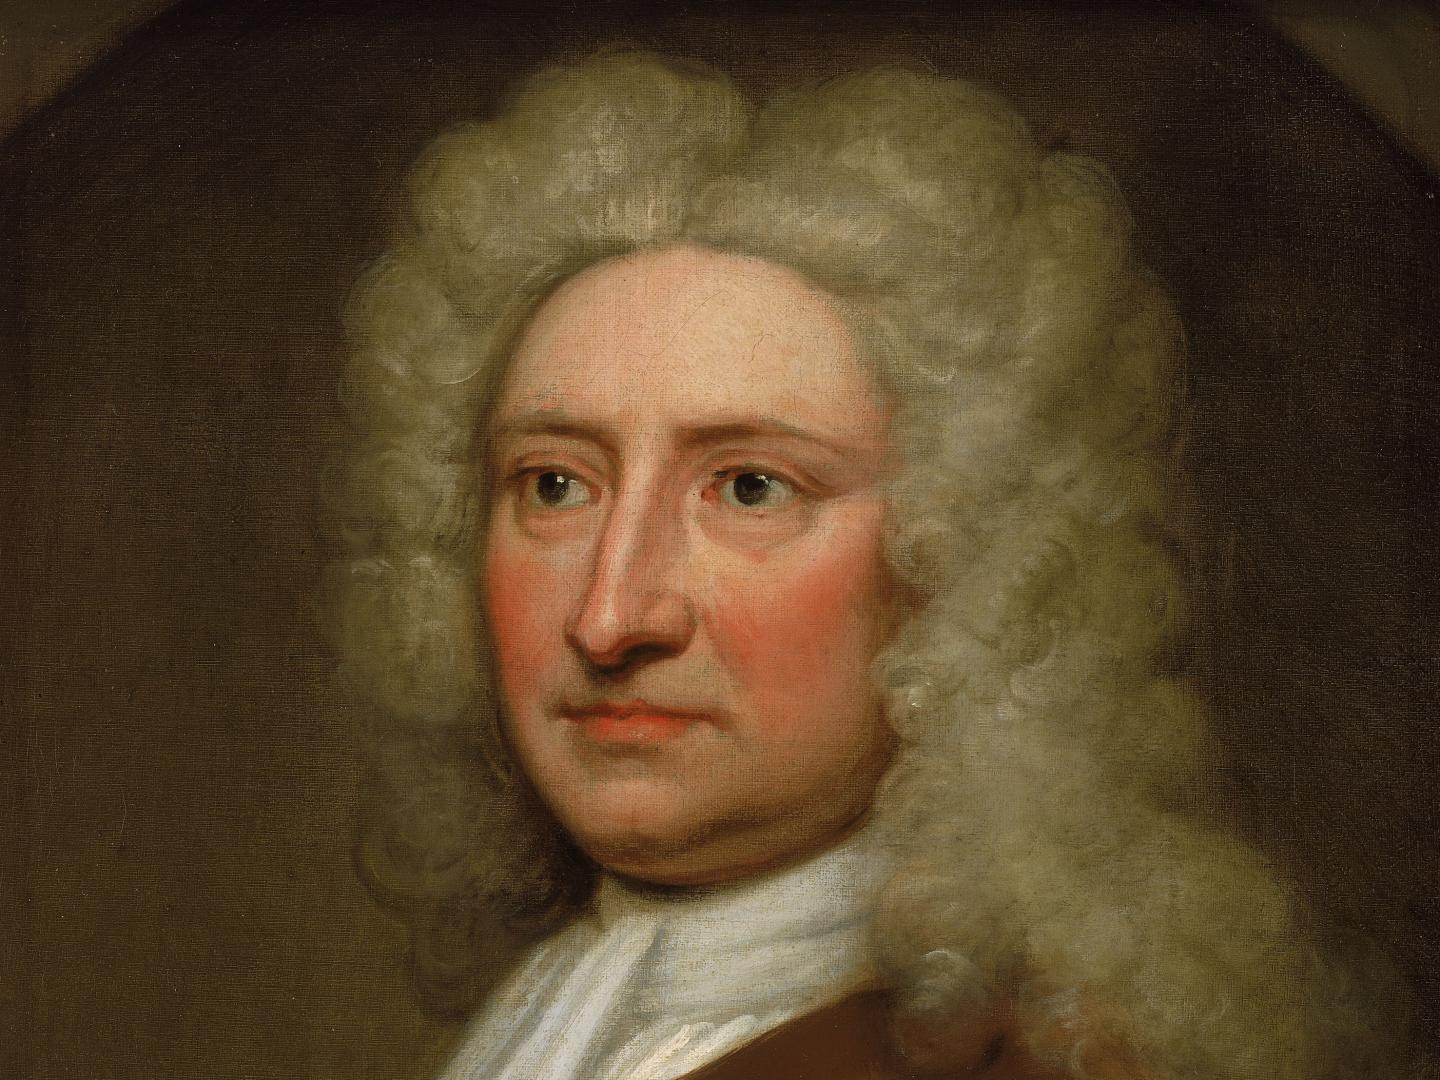 Edmond Halley by Sir Godfrey Kneller (detail)